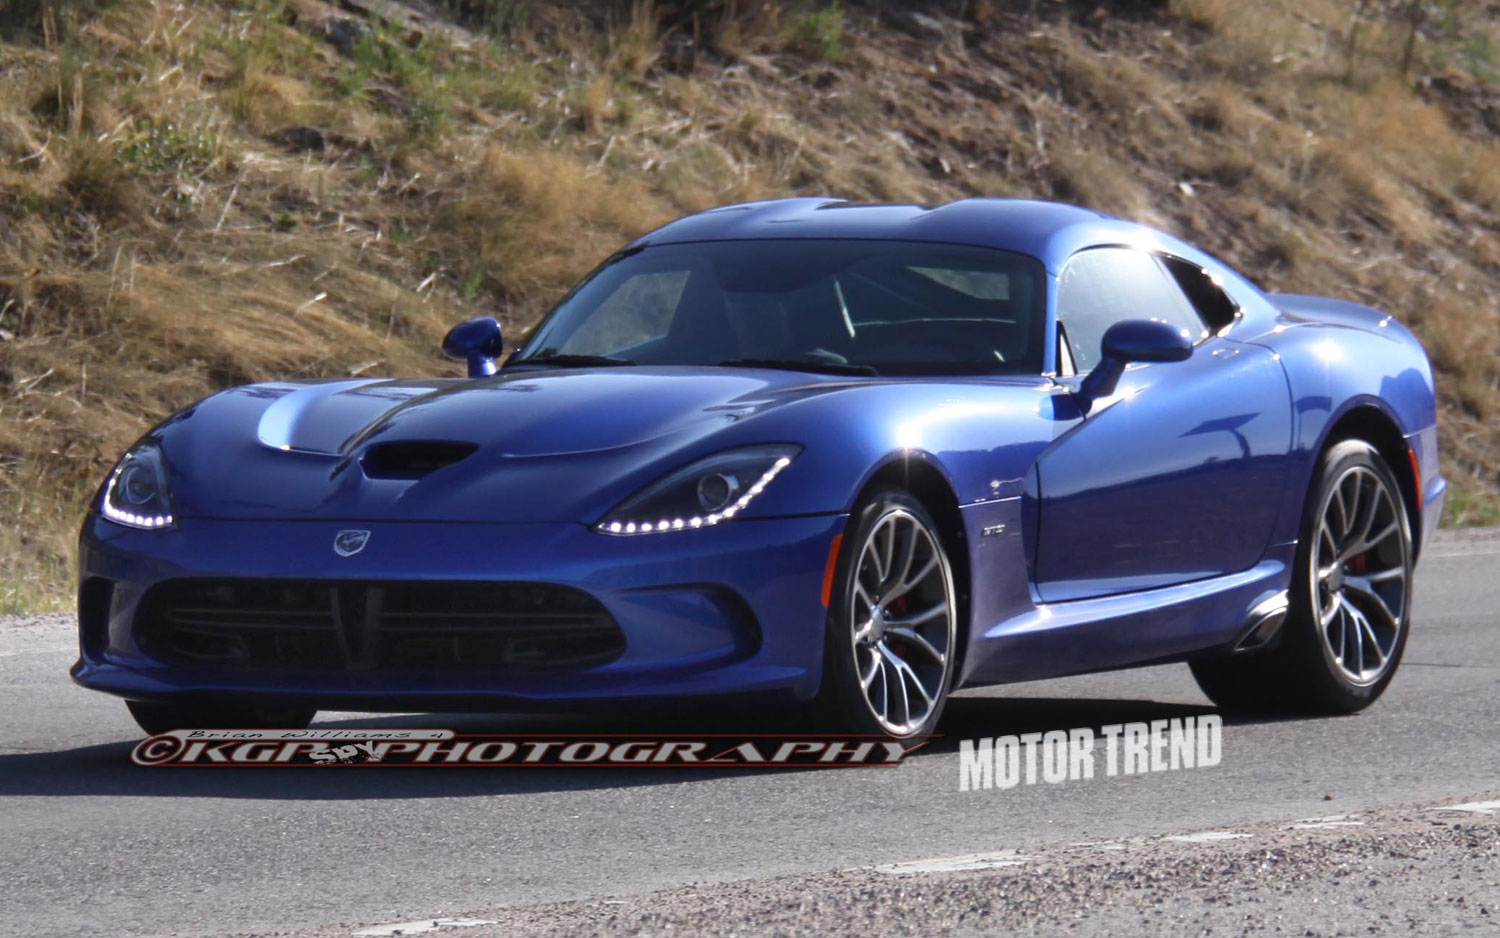 True Blue Hue 2013 Srt Viper Gts Caught Wearing A Familiar Paint 2014 Dodge Ram Colors Color